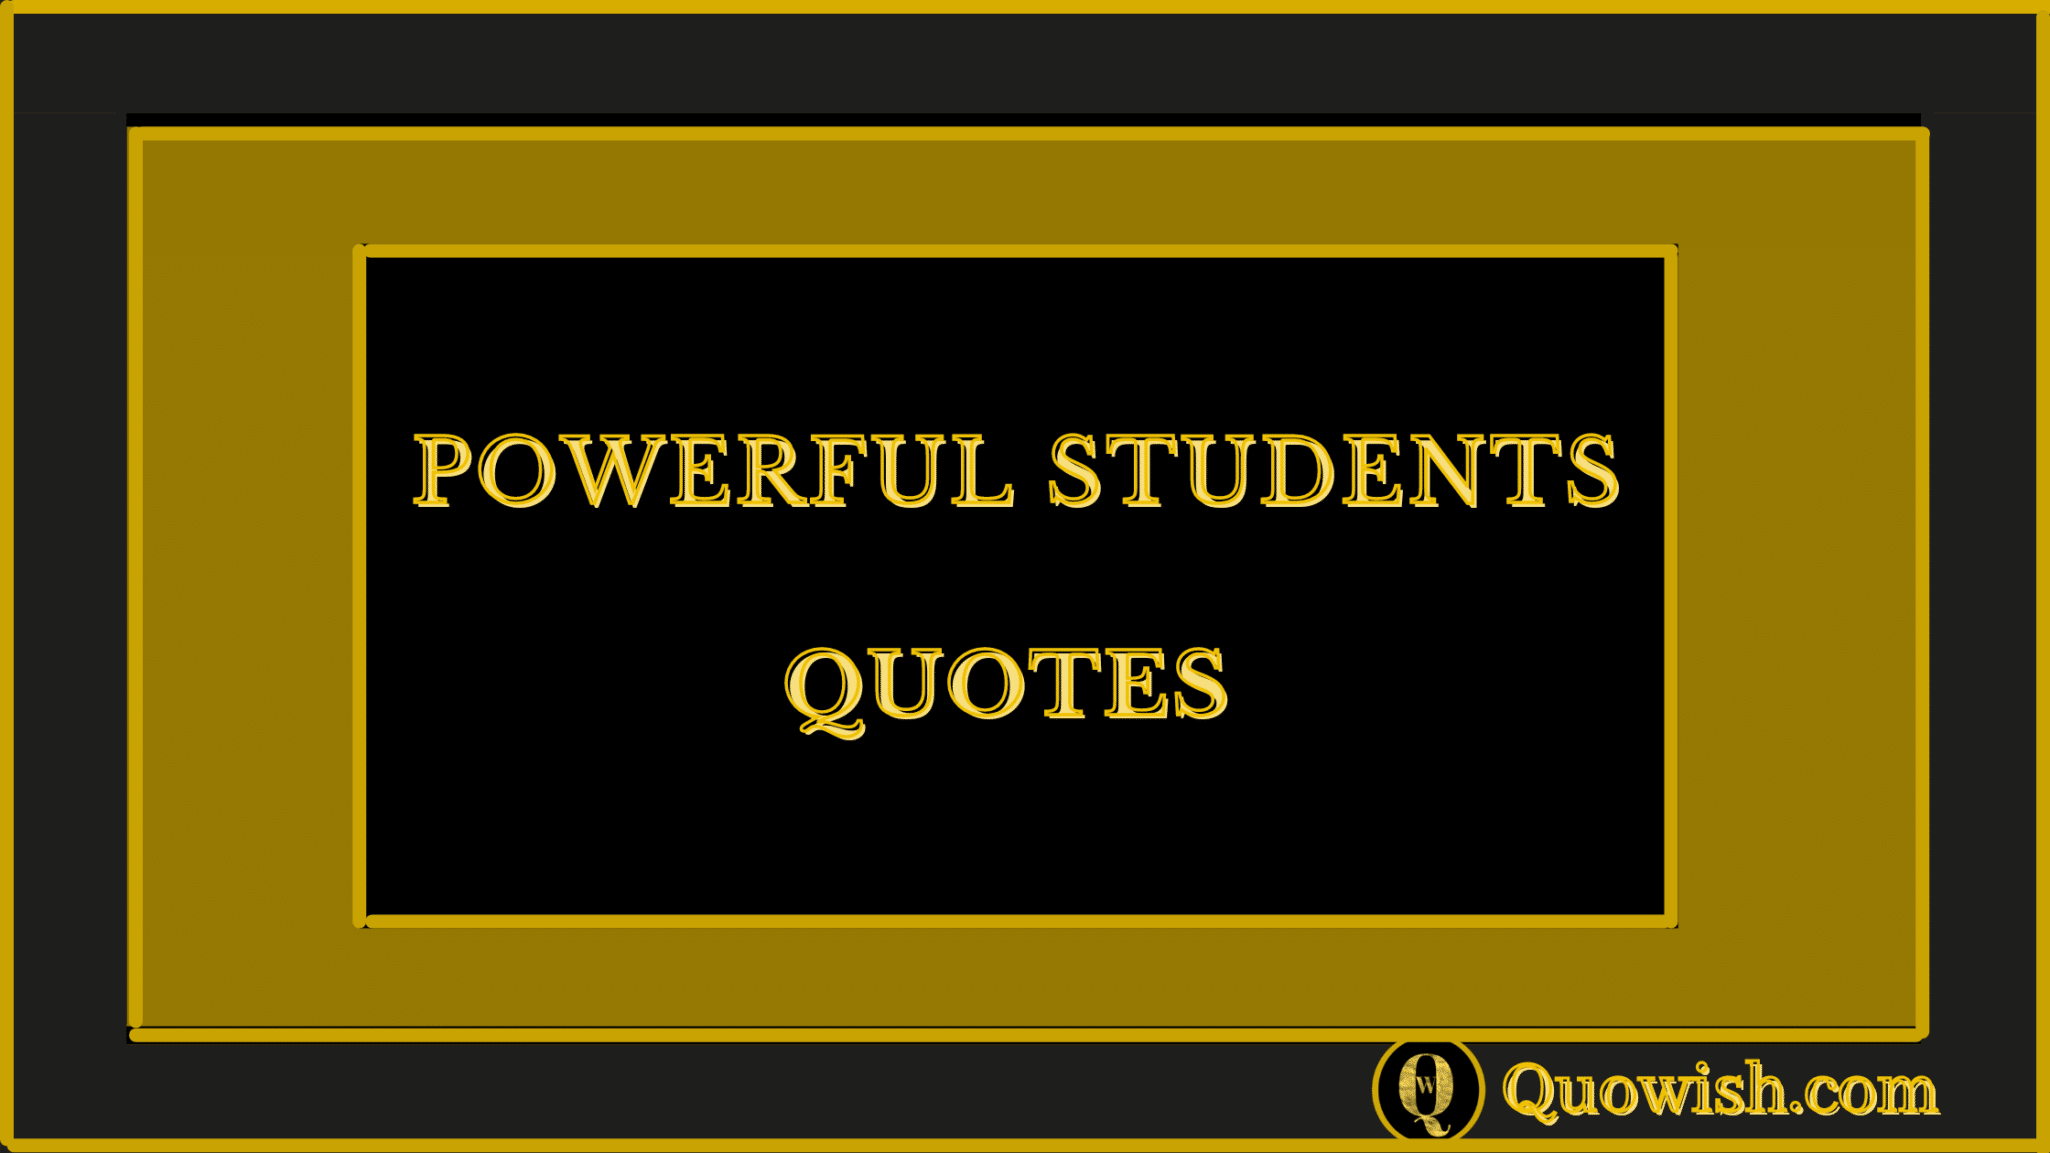 Powerful quotes for all students